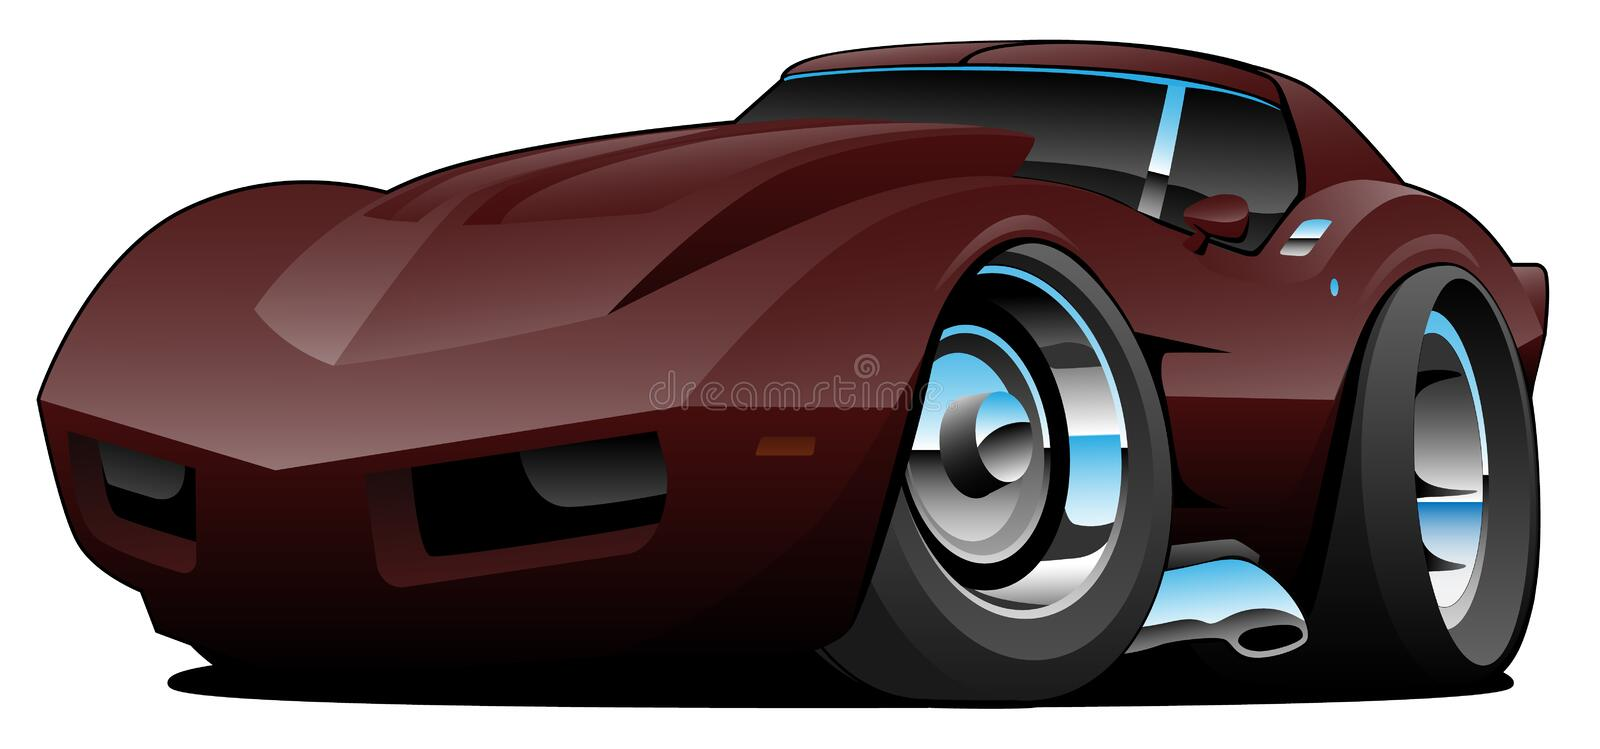 Classic Seventies American Sports Car Cartoon Isolated Vector Illustration. Deep red classic muscle car cartoon, shiny paint and lots of chrome, sharp vector royalty free illustration